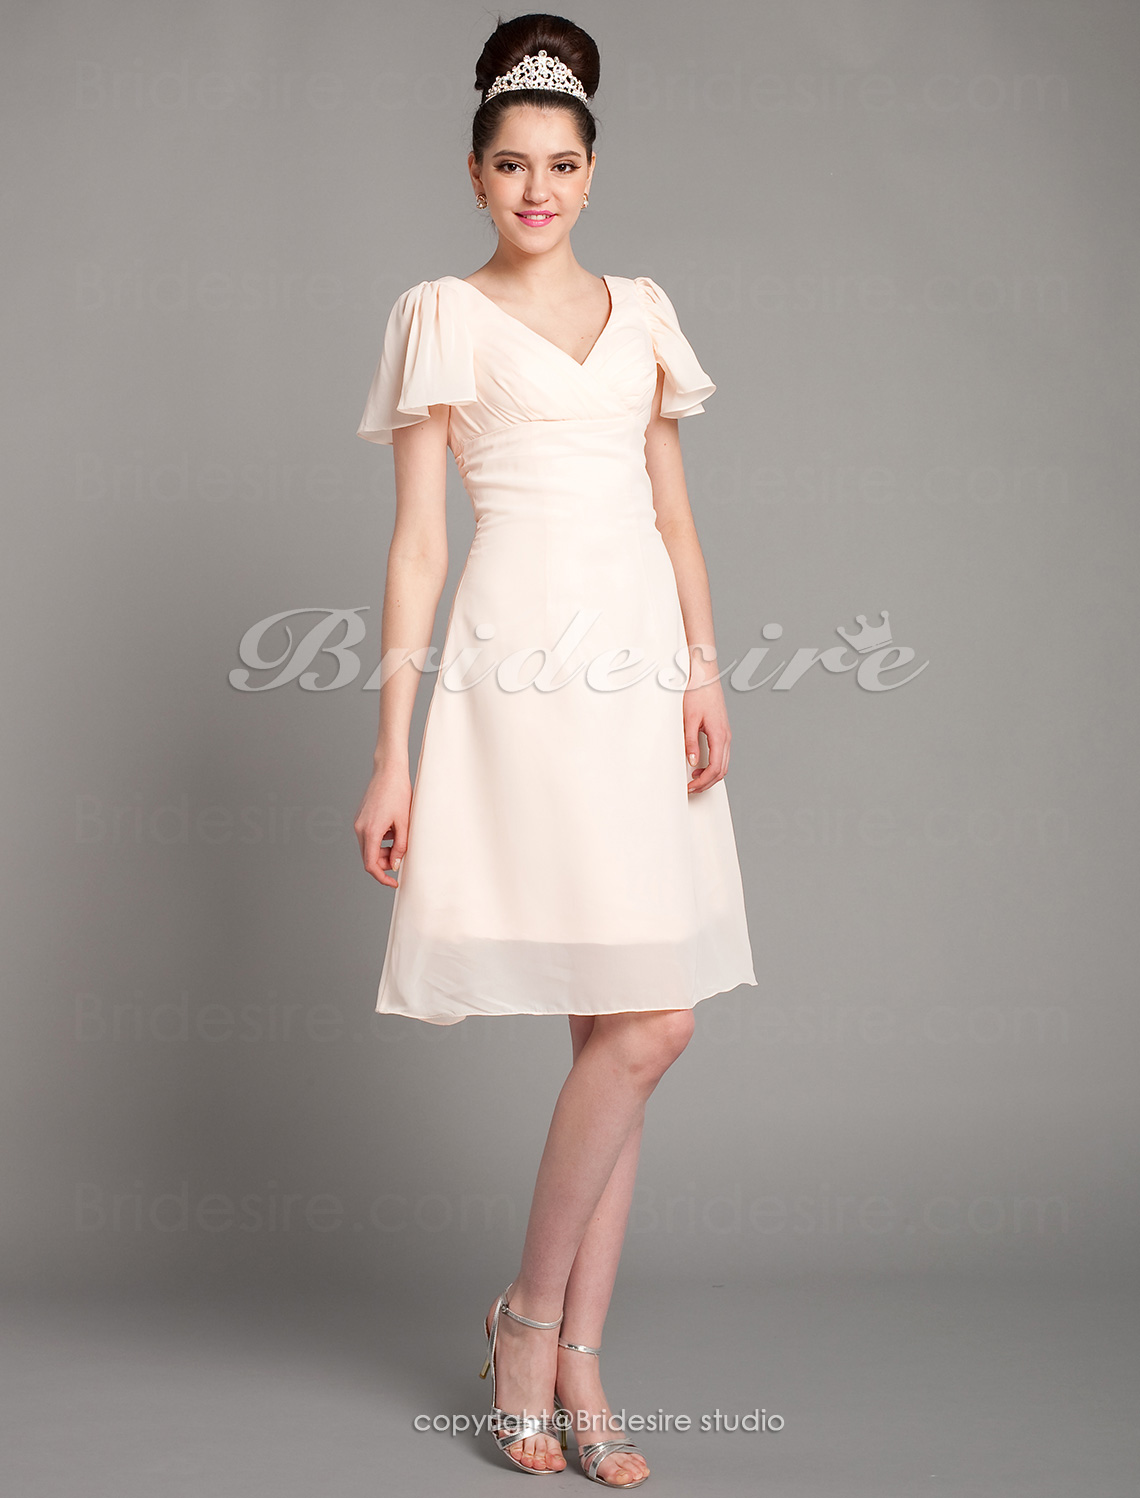 A-line Knee-length Chiffon V-neck Bridesmaid Dress